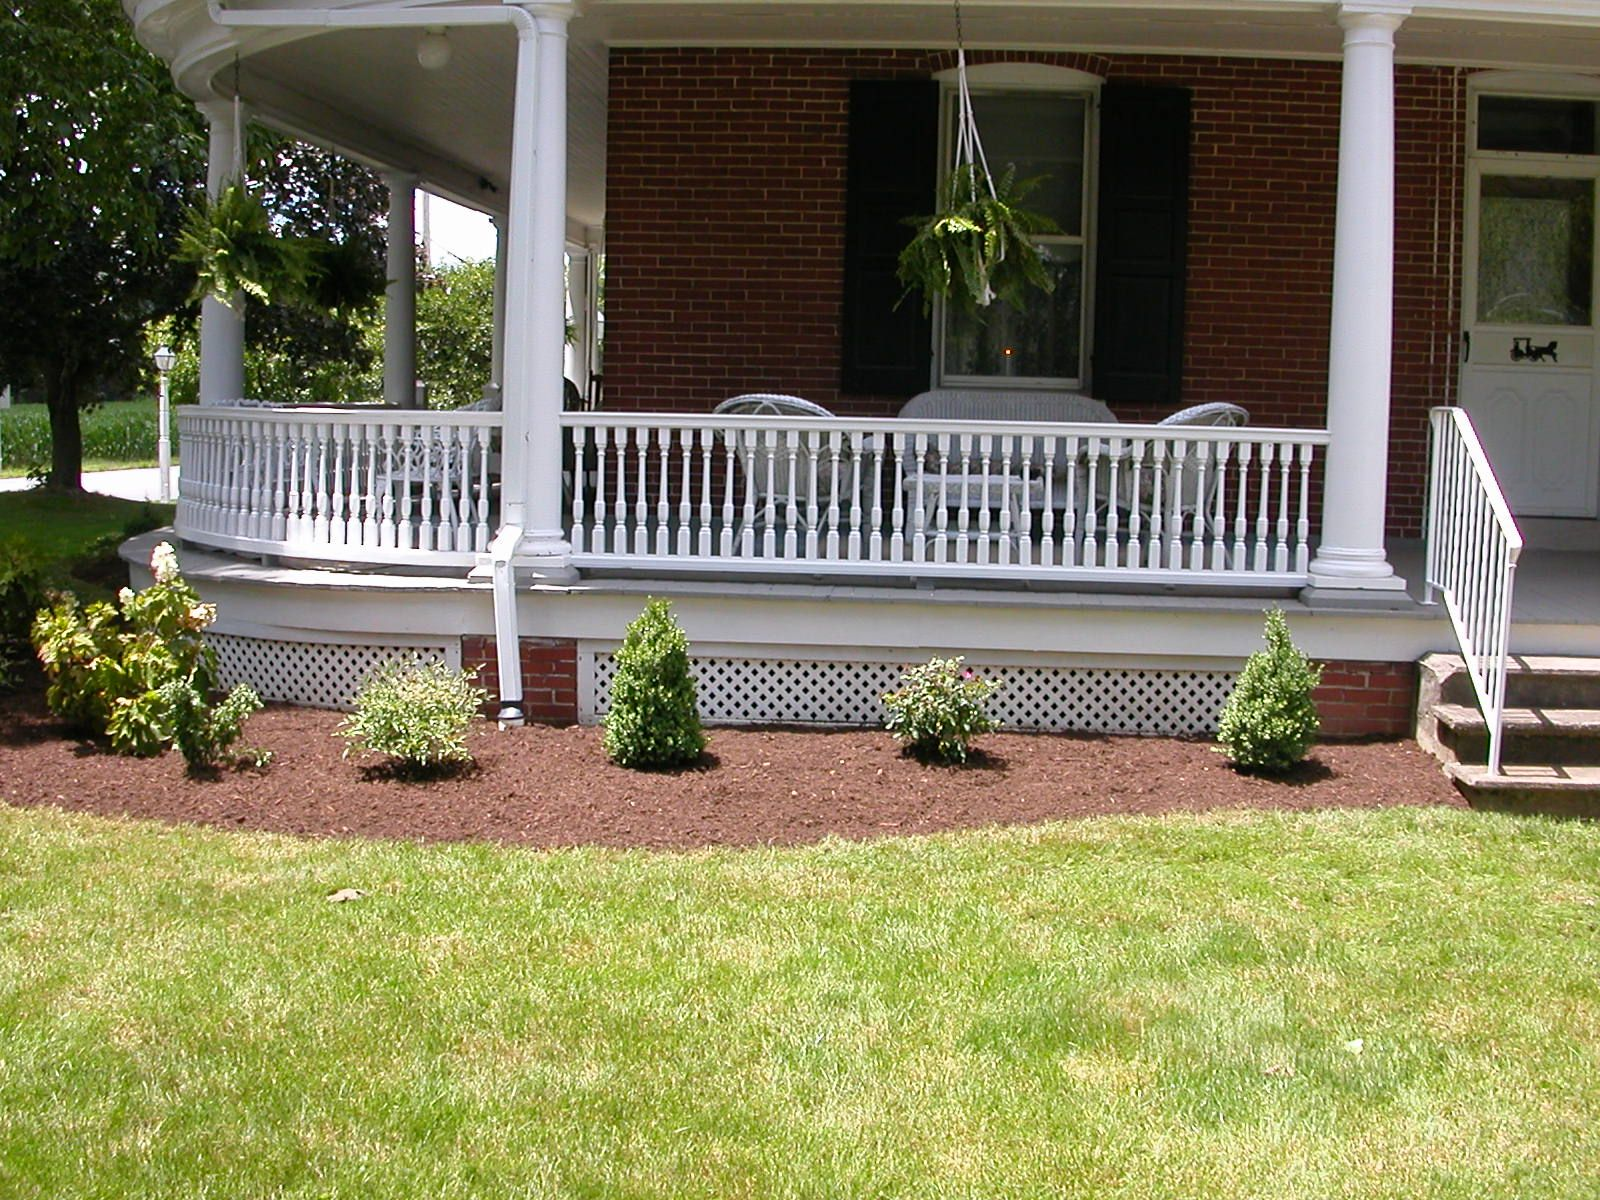 Landscaping ideas for wrap around porches our new for New landscaping ideas